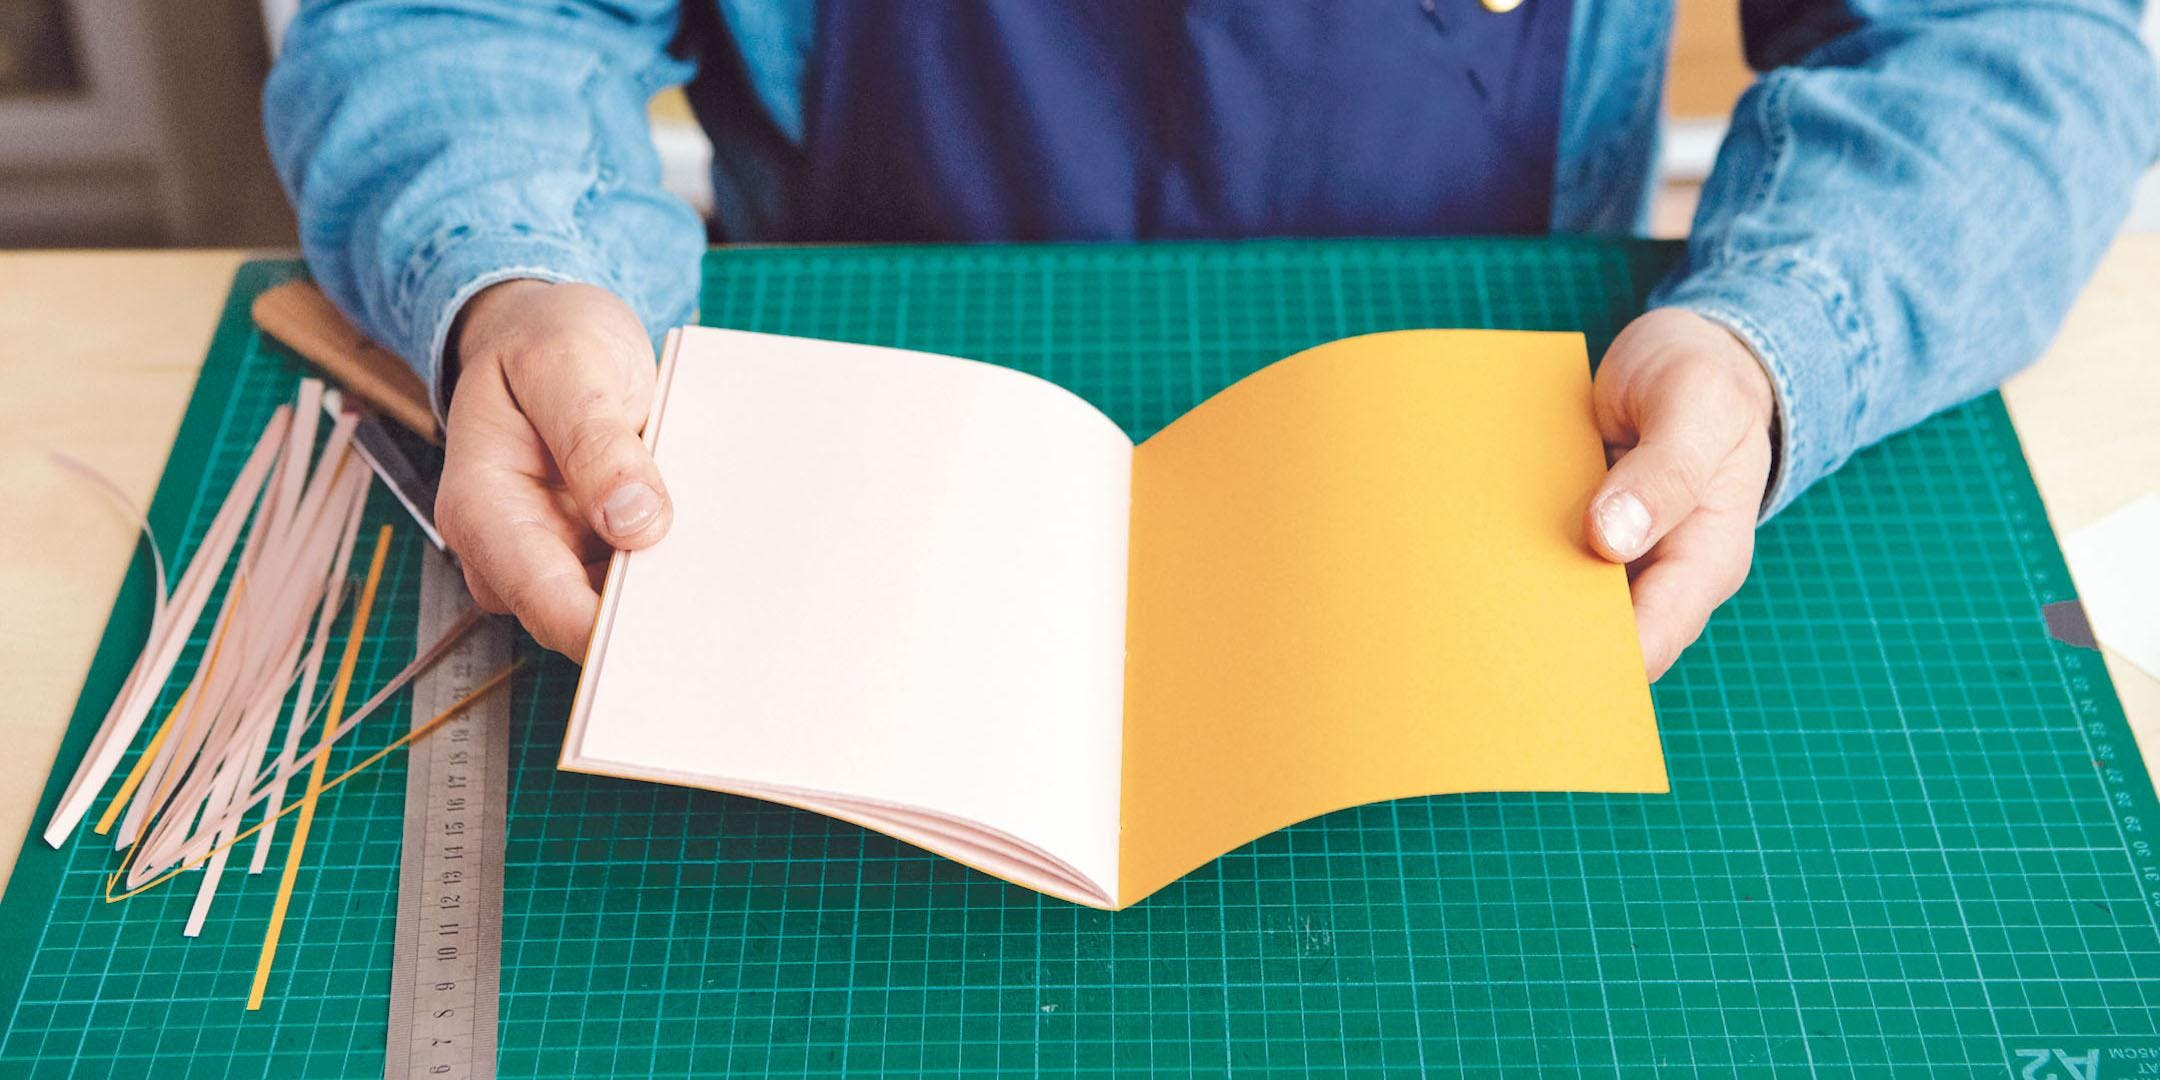 Introduction to Bookbinding 1: Pamphlets, Sta